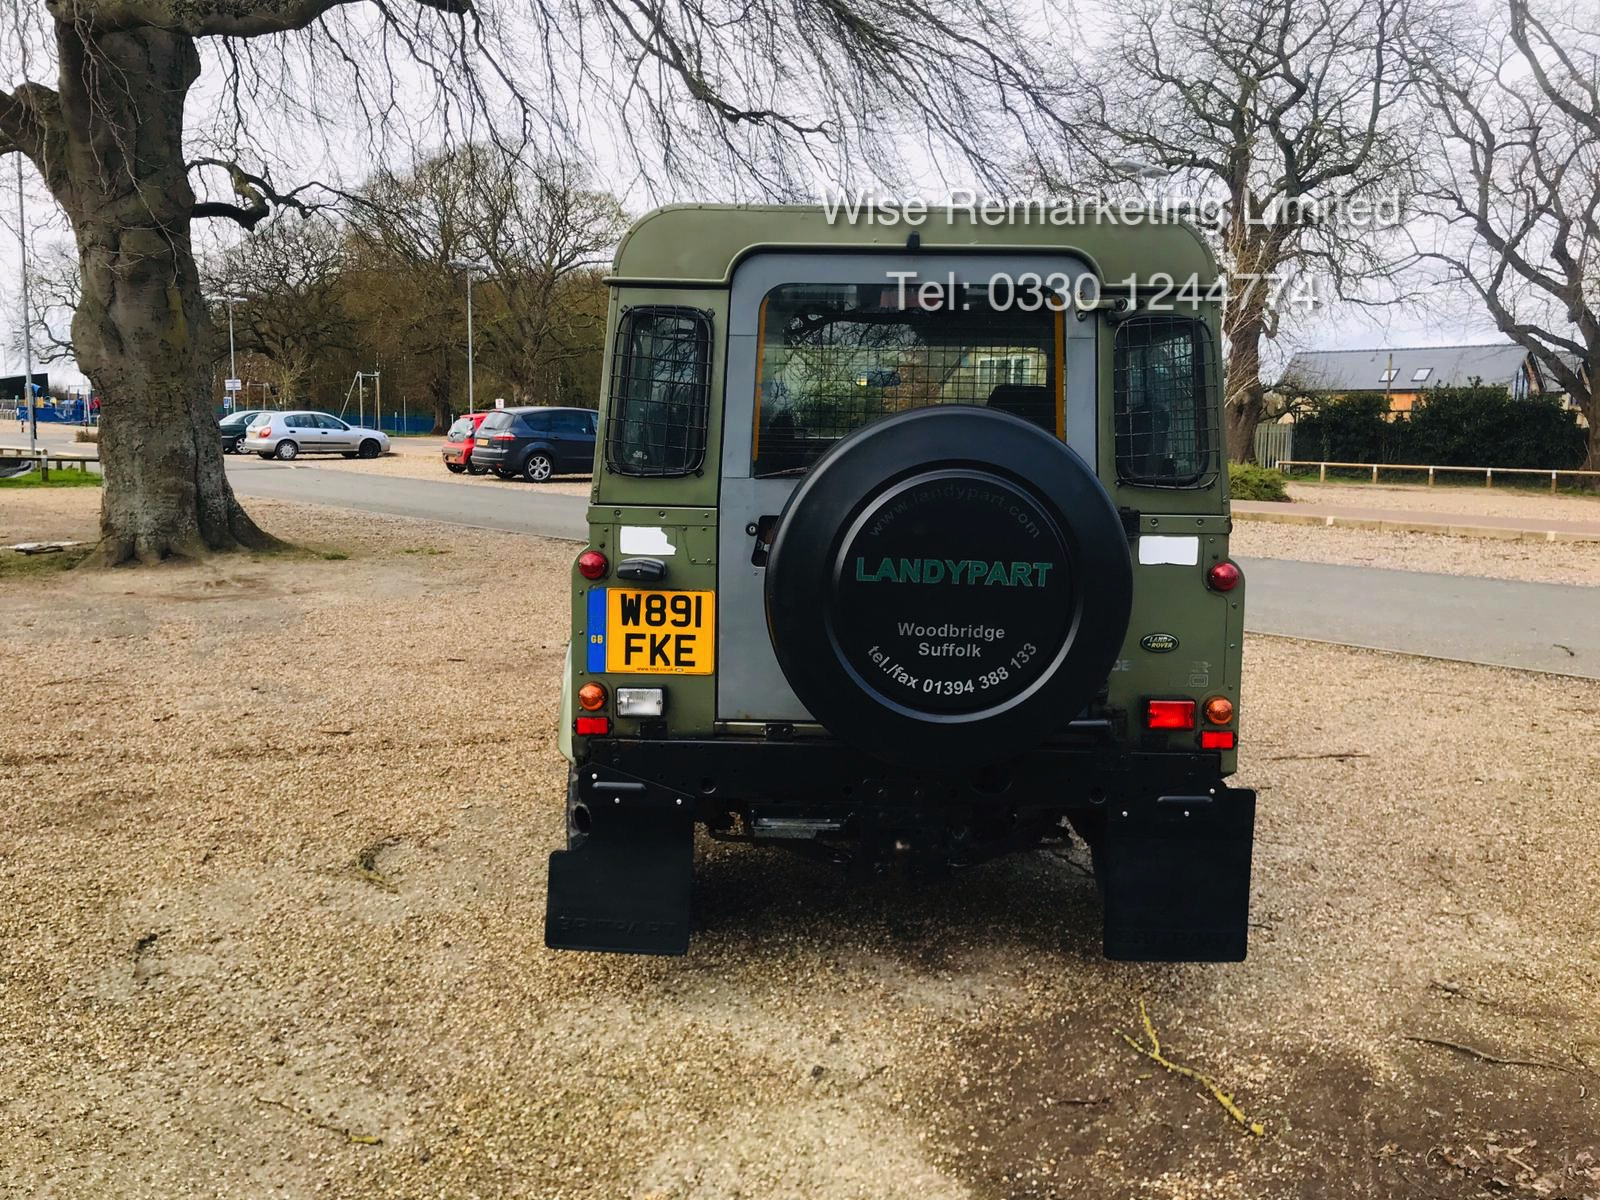 (RESERVE MET) Land Rover Defender 90 County 2.5 TD5 - 2000 Year W Reg - 7 Seater- SAVE 20% NO VAT - Image 2 of 12